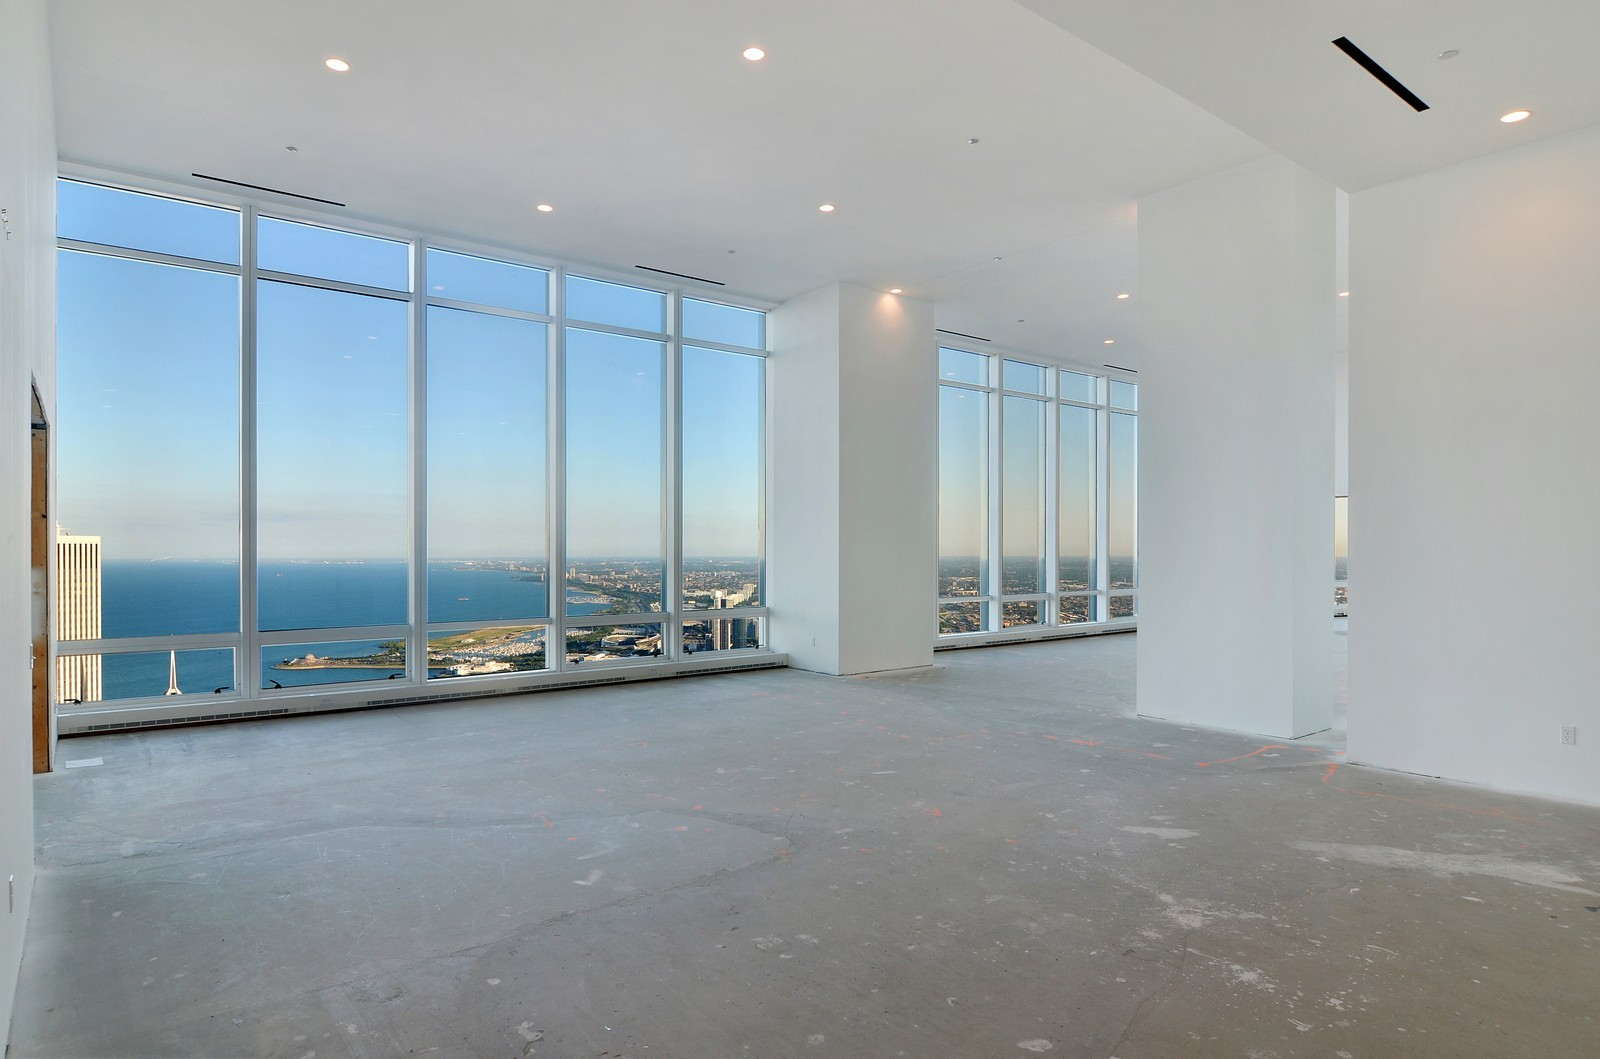 Real Estate Photography - 401 N Wabash, Unit PH89A, Chicago, IL, 60611 - Location 1